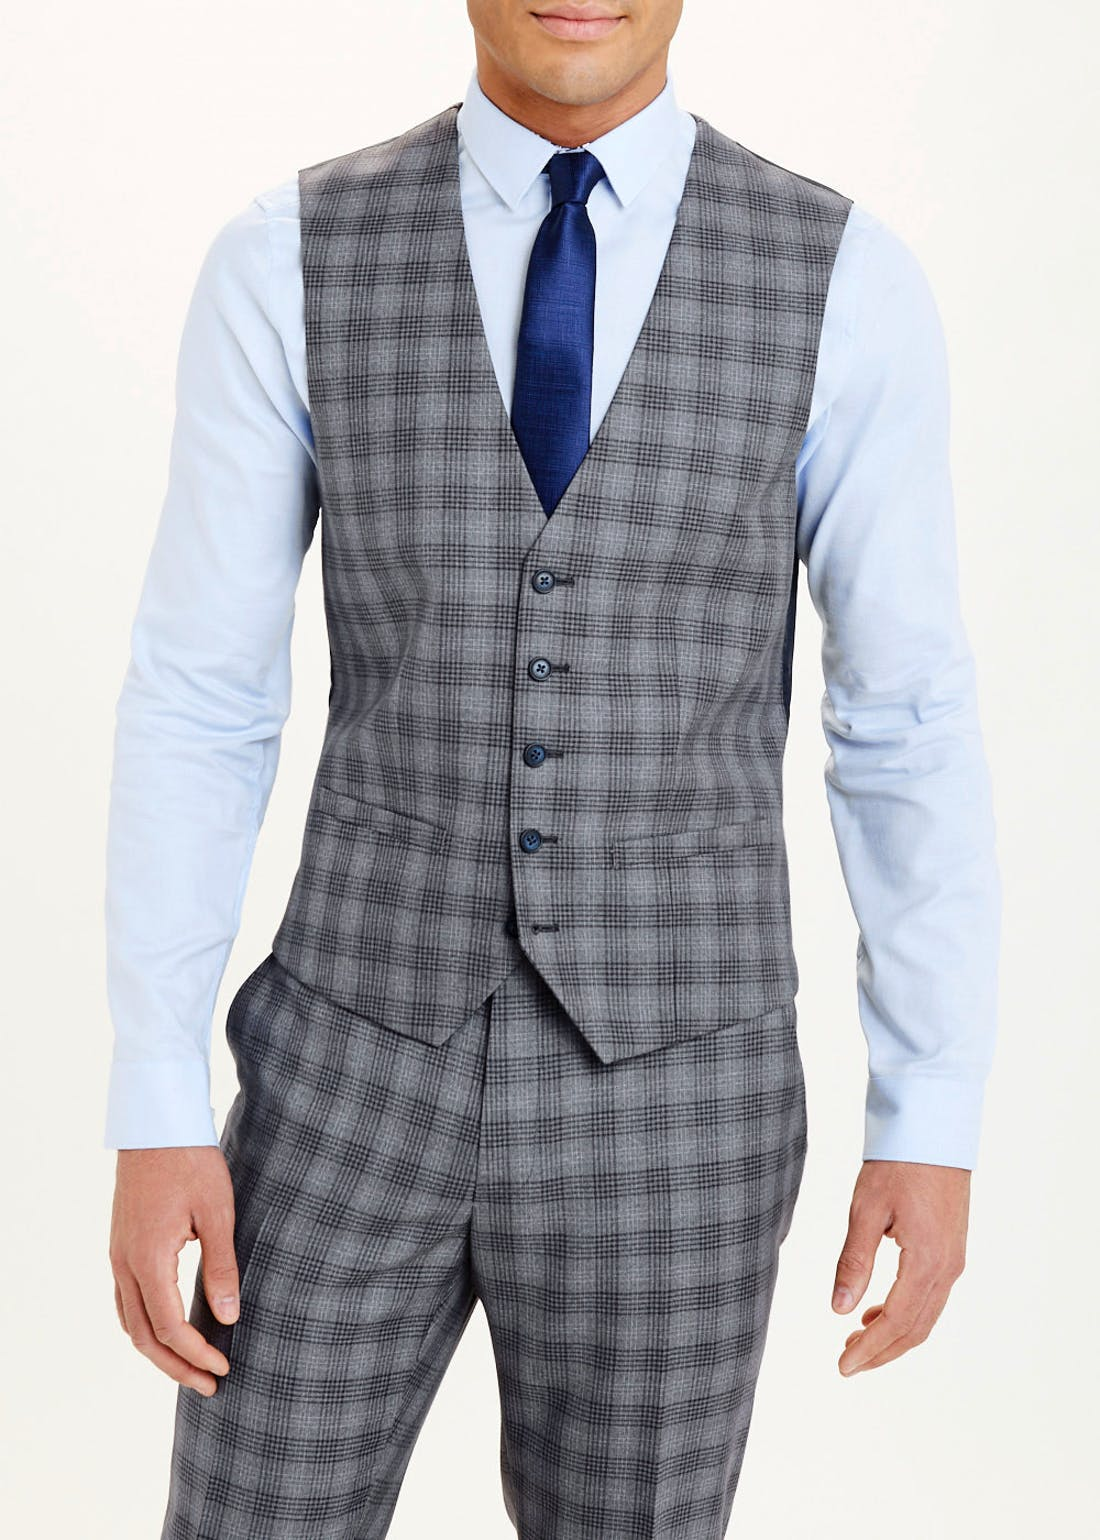 Taylor & Wright Ainsworth Tailored Fit Waistcoat